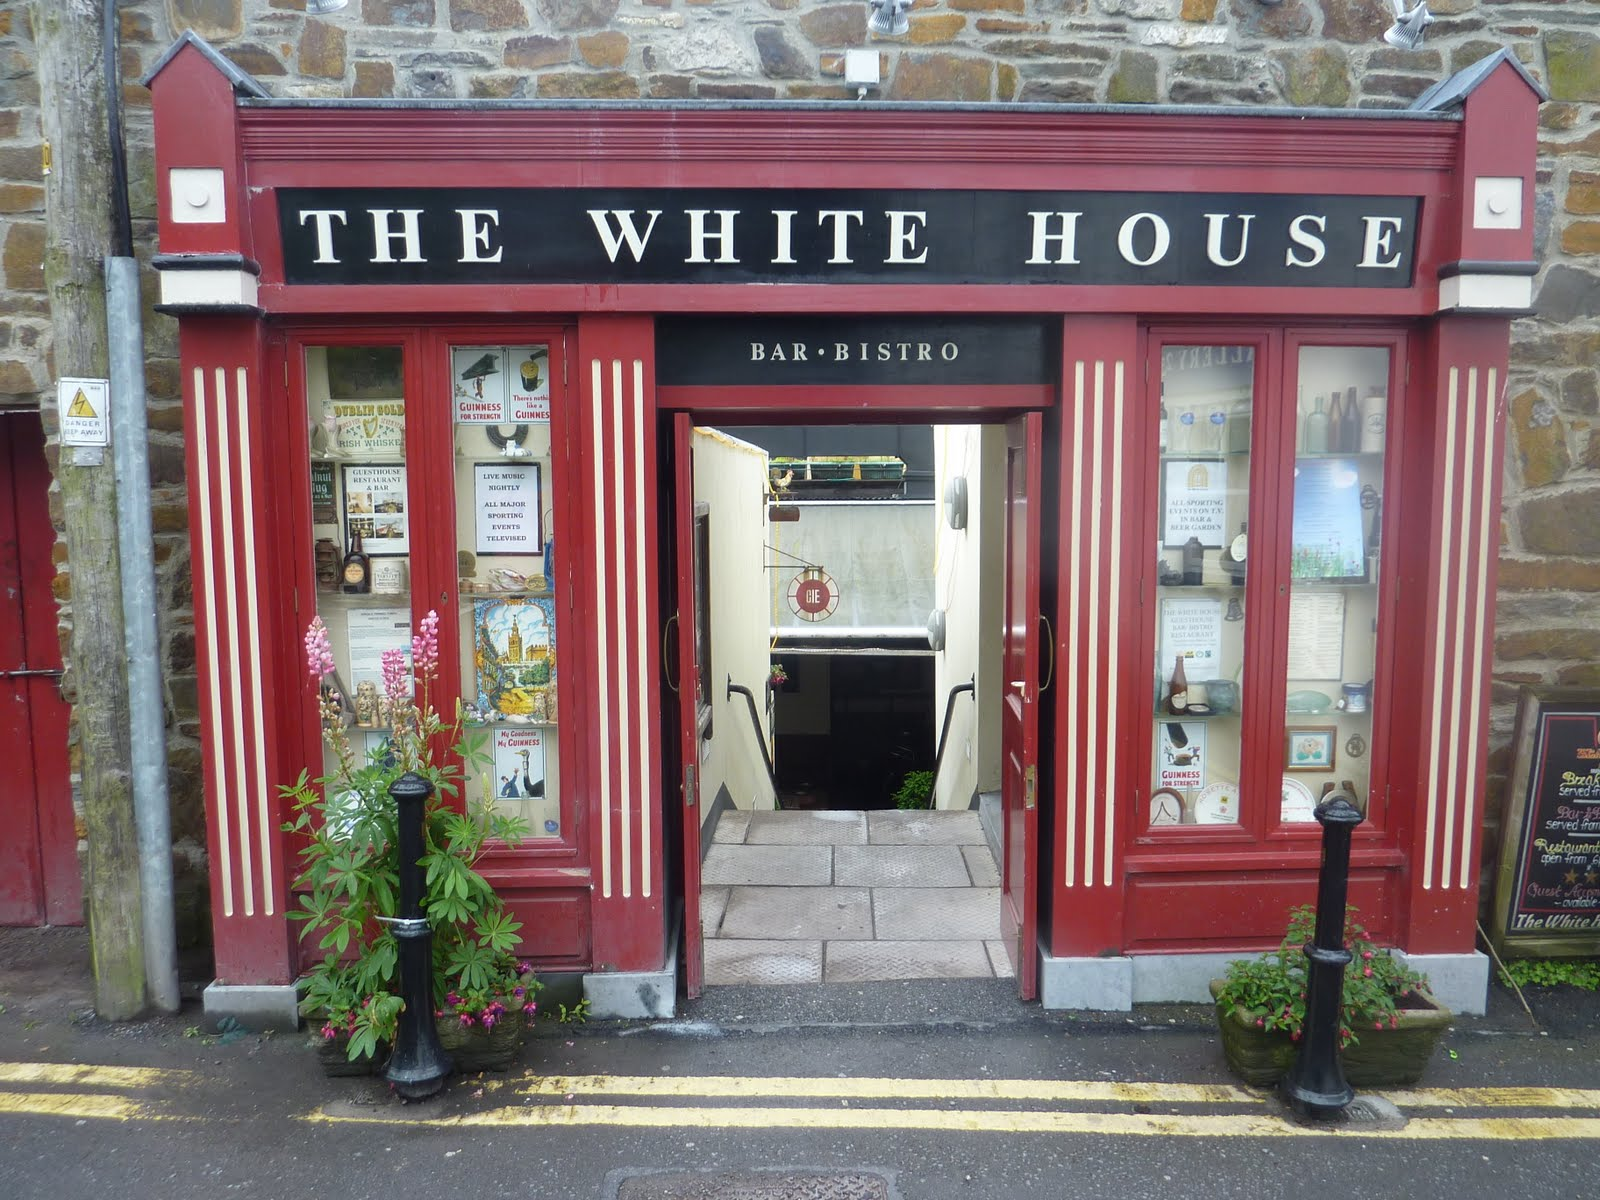 K Jones Kinsale We stayed a night at the White